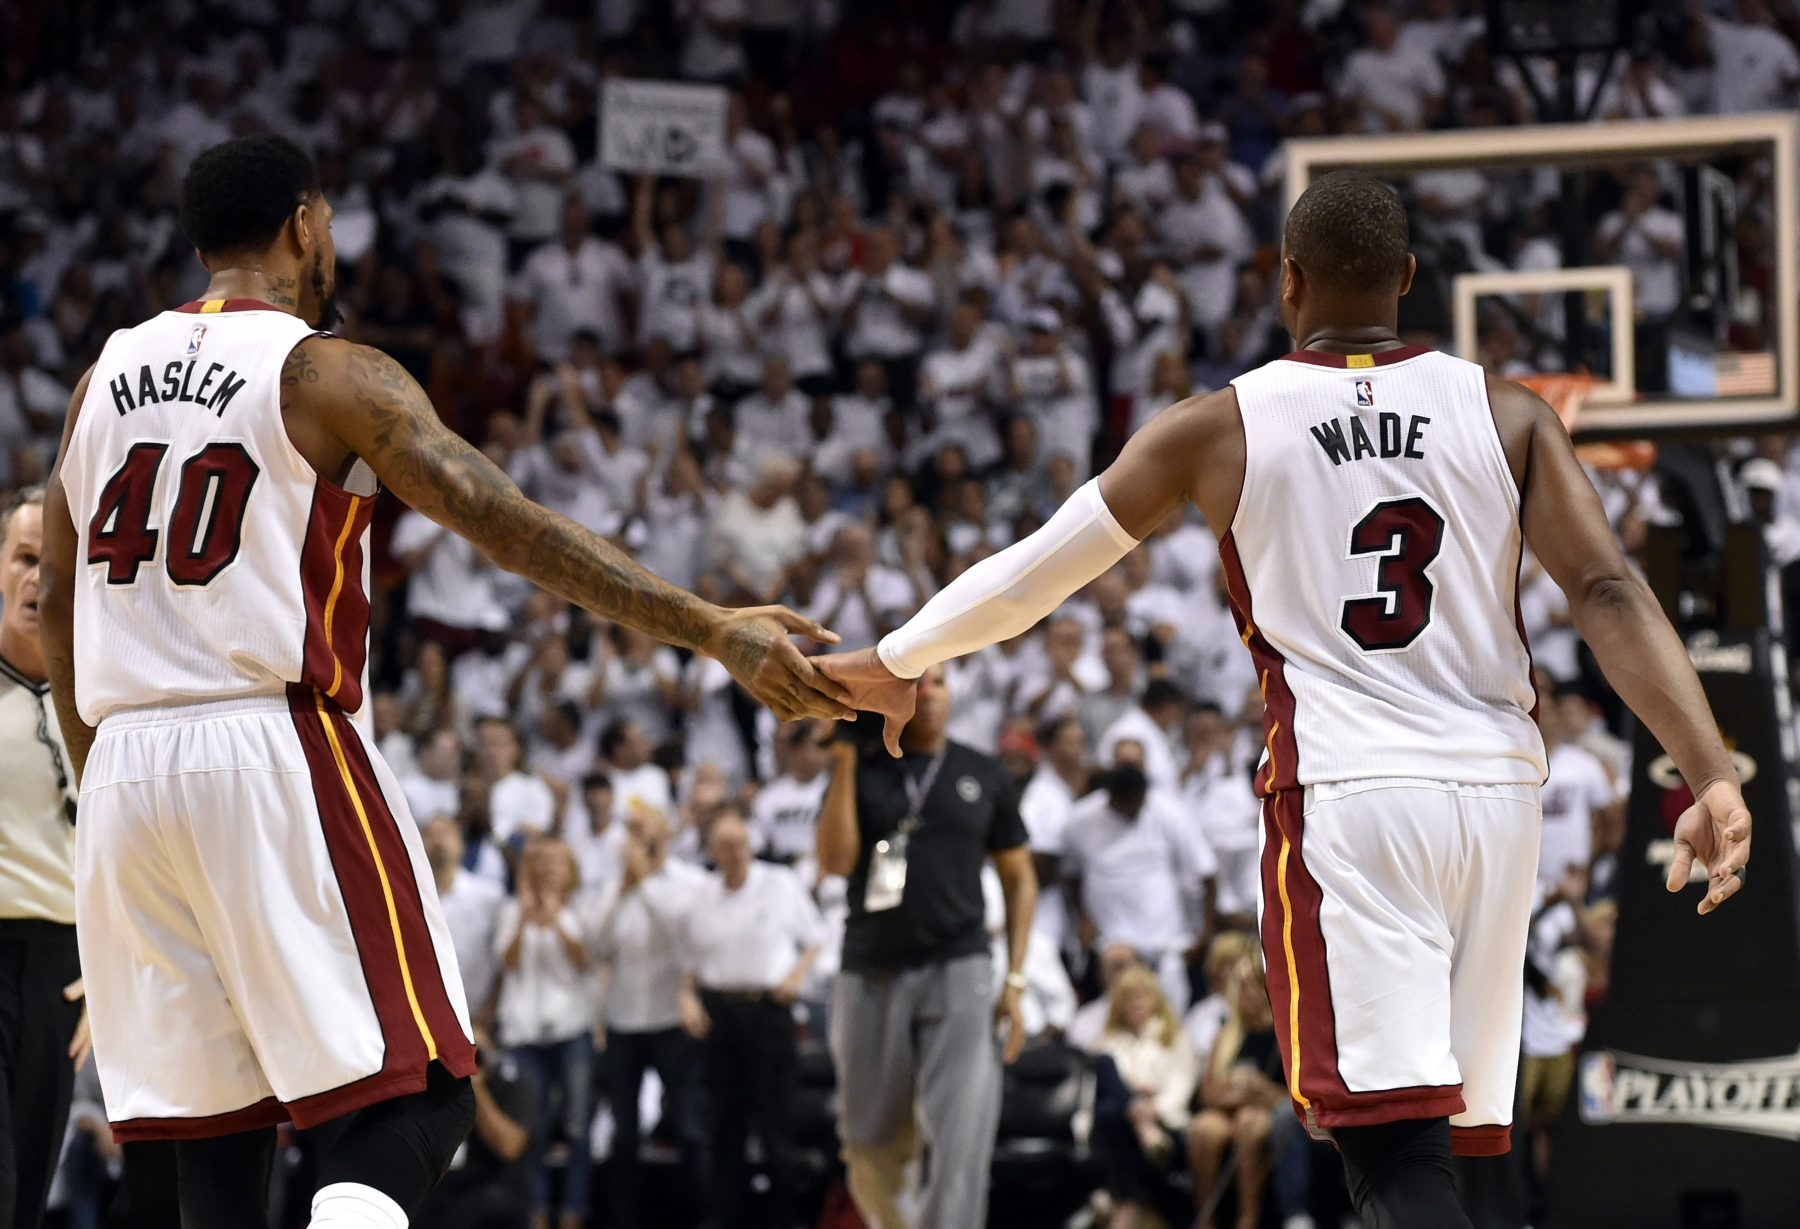 Everyone turned up for Dwyane Wade's final game